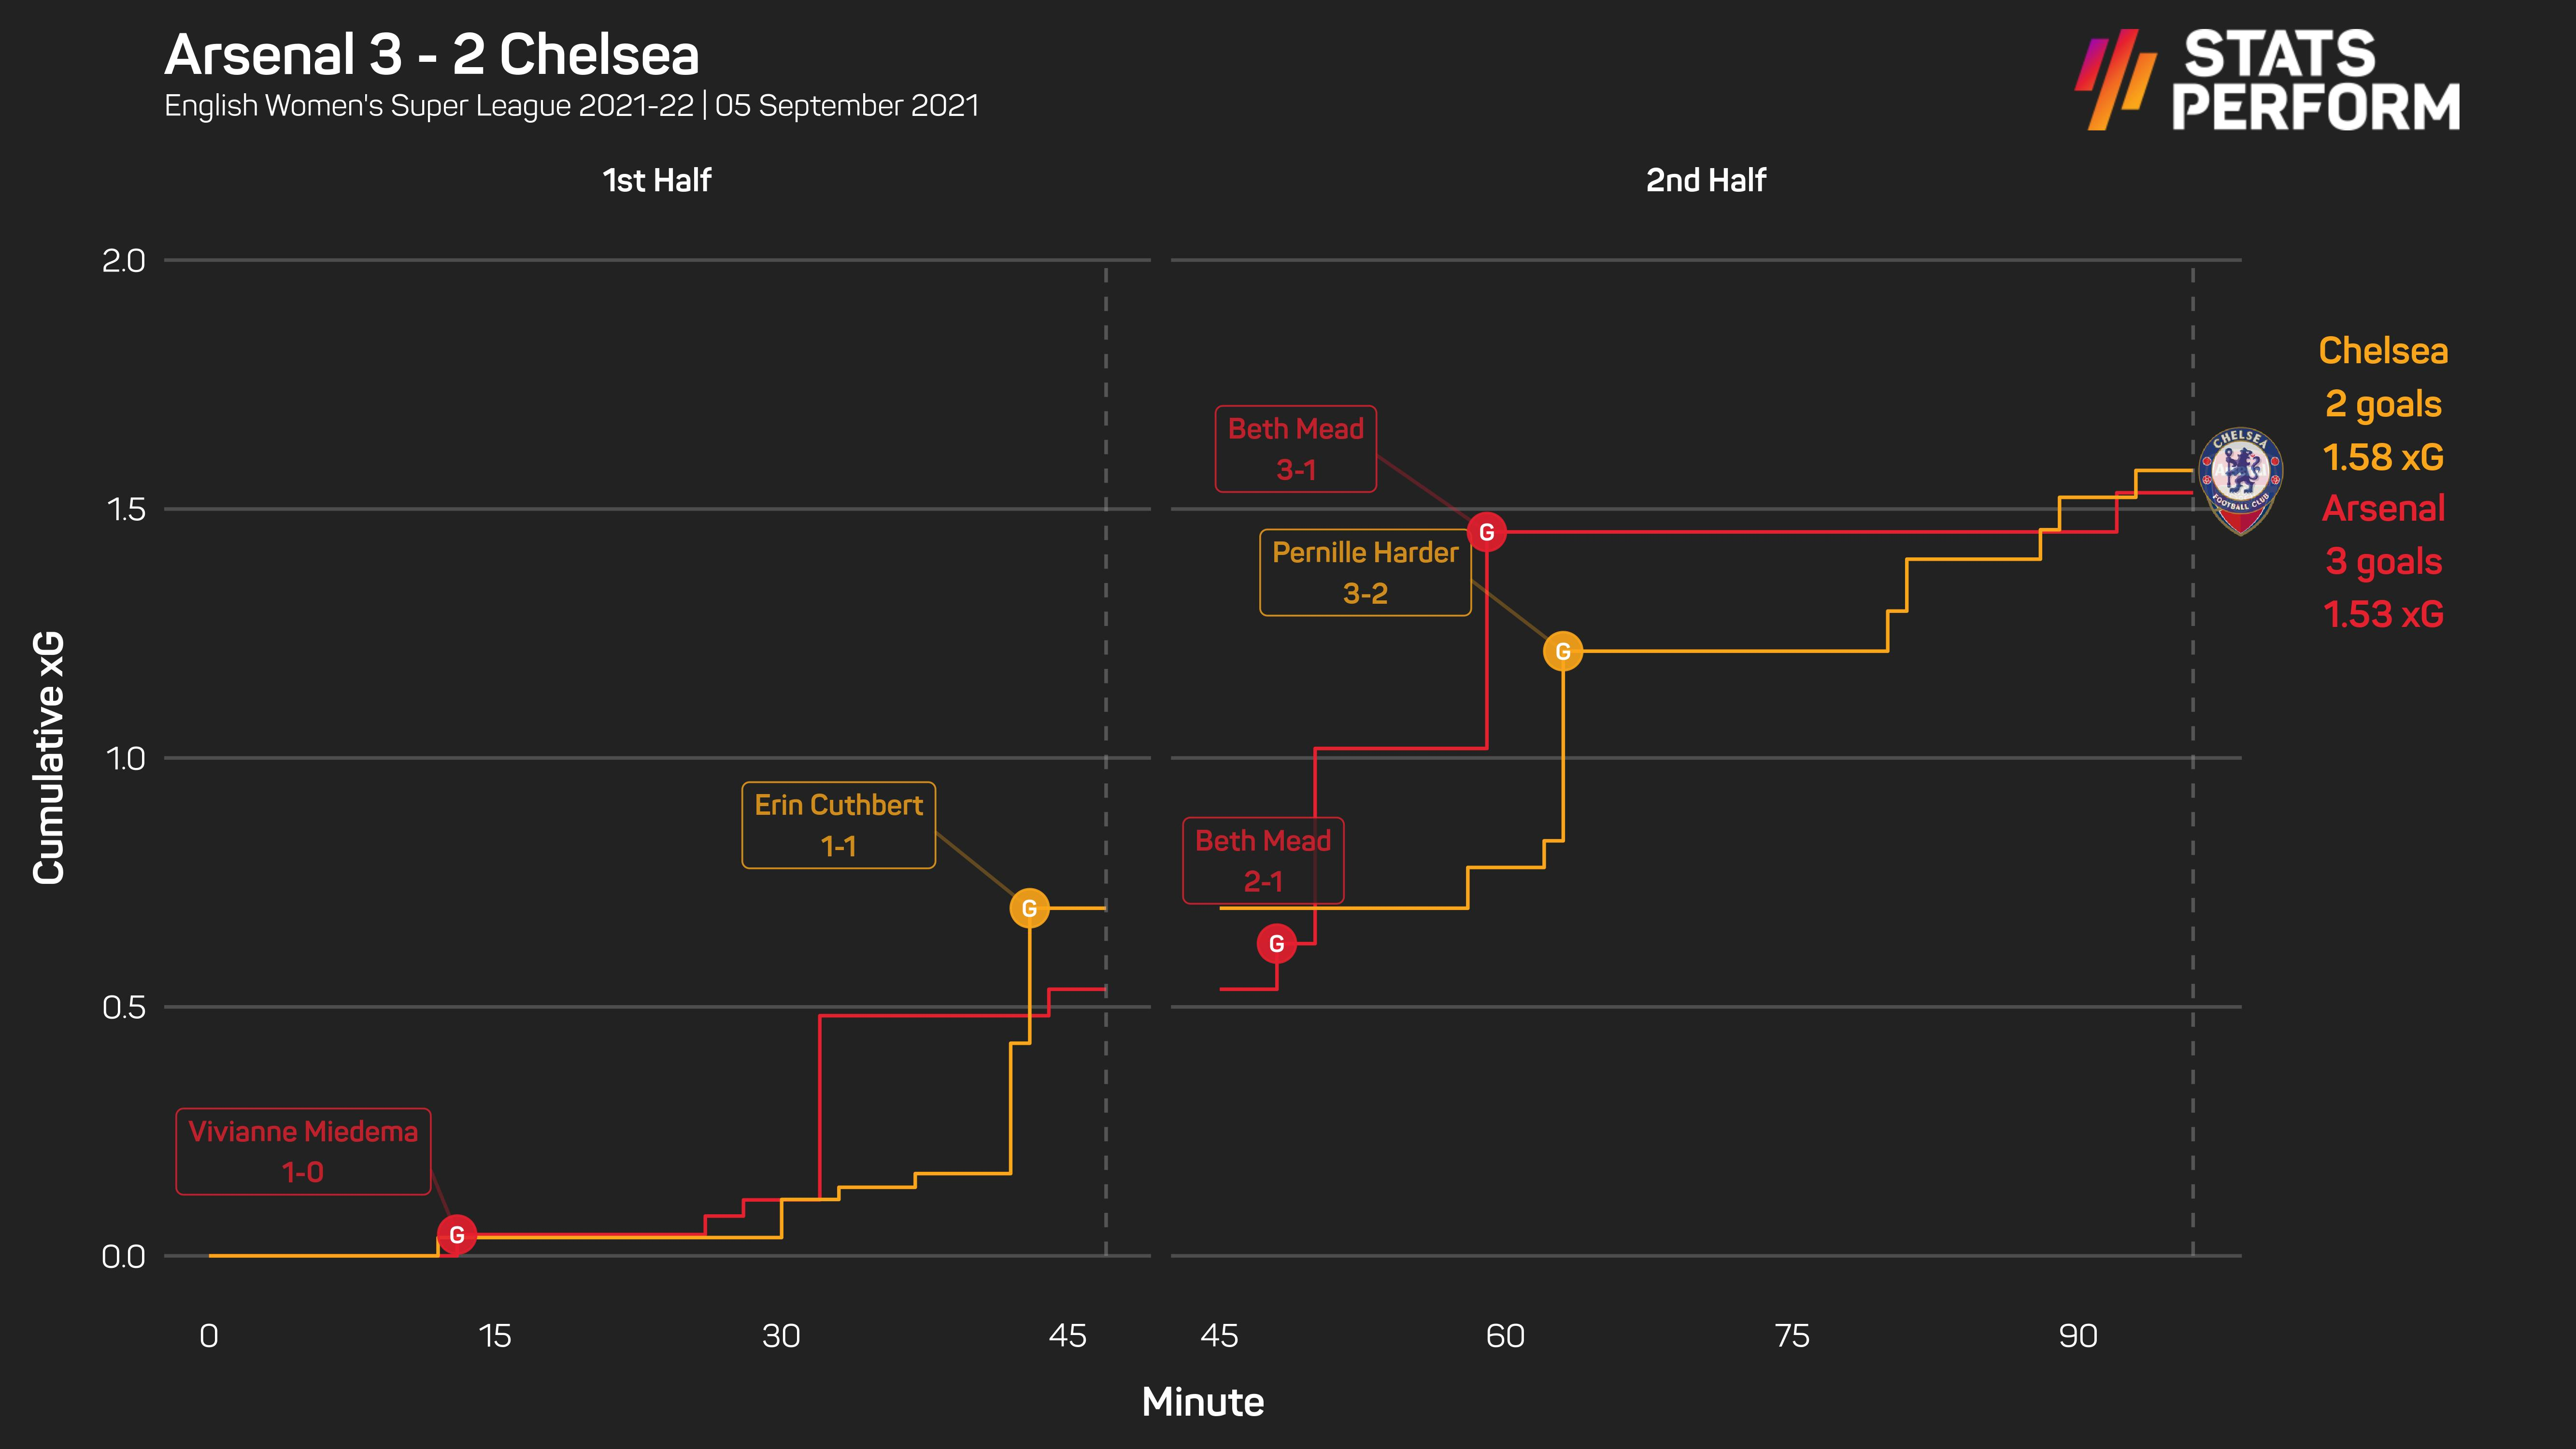 Arsenal held on against Chelsea in their Emirates opener